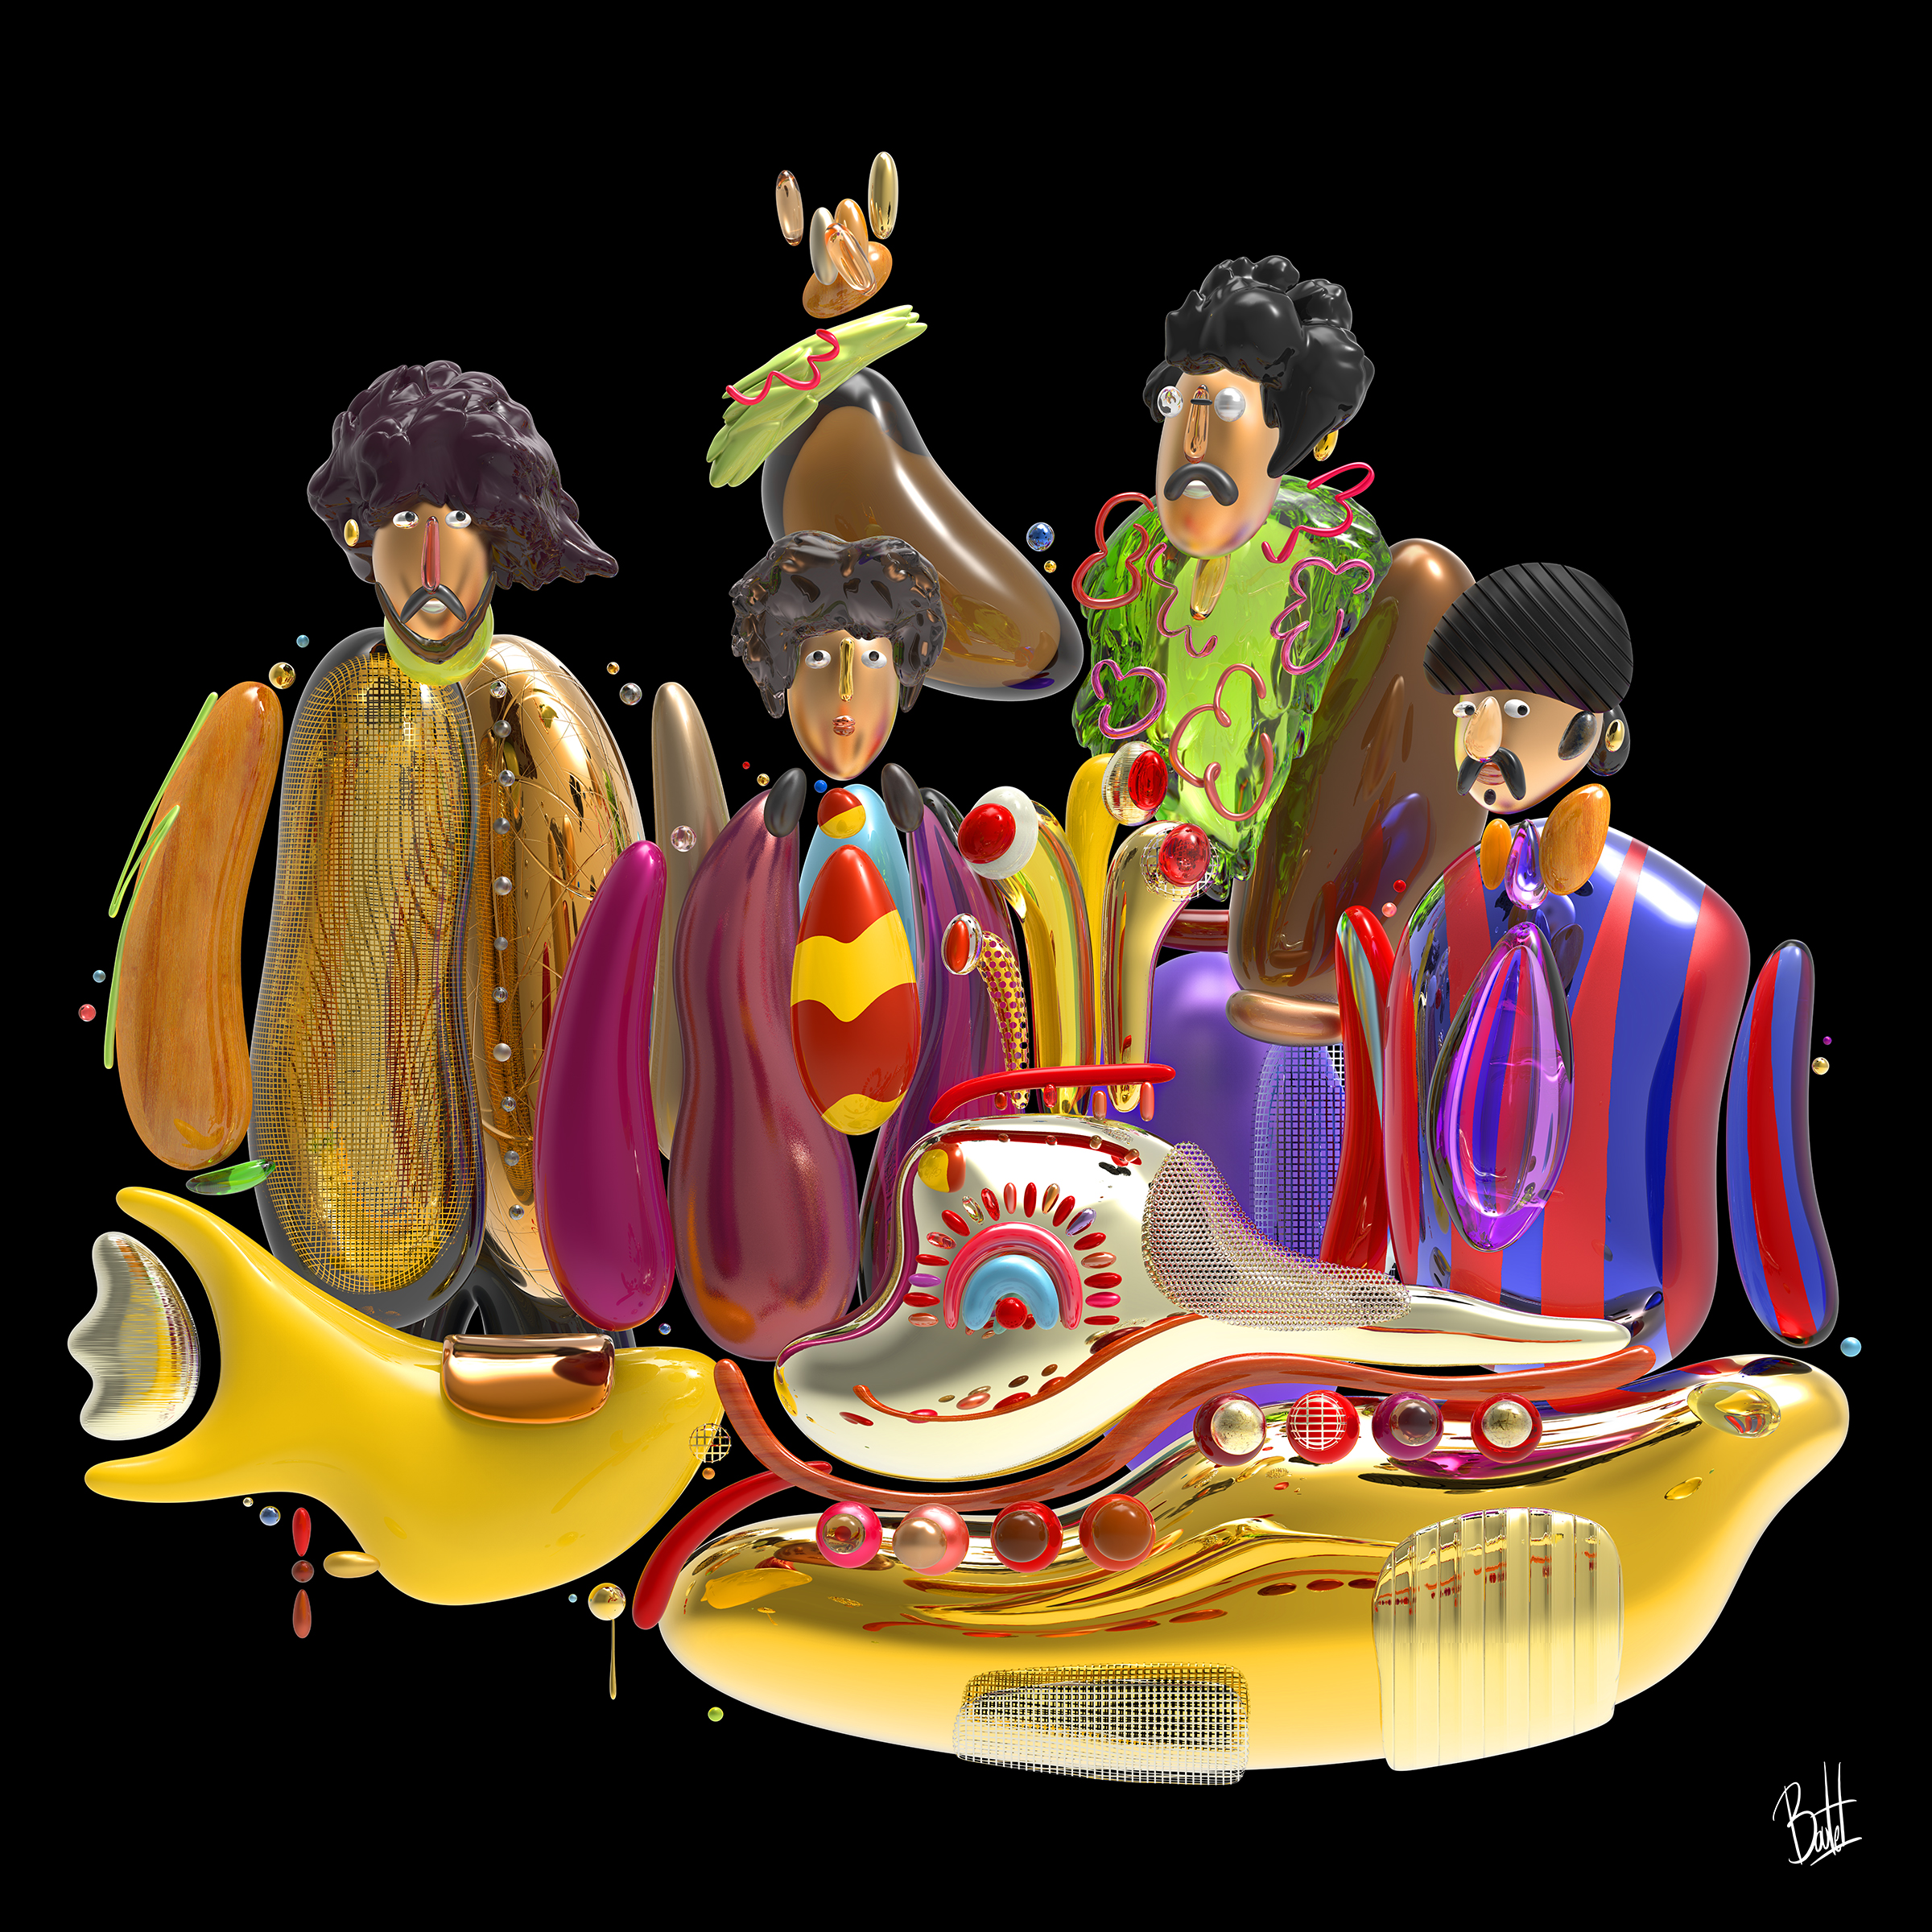 yellow-submarine-hommage-60x60